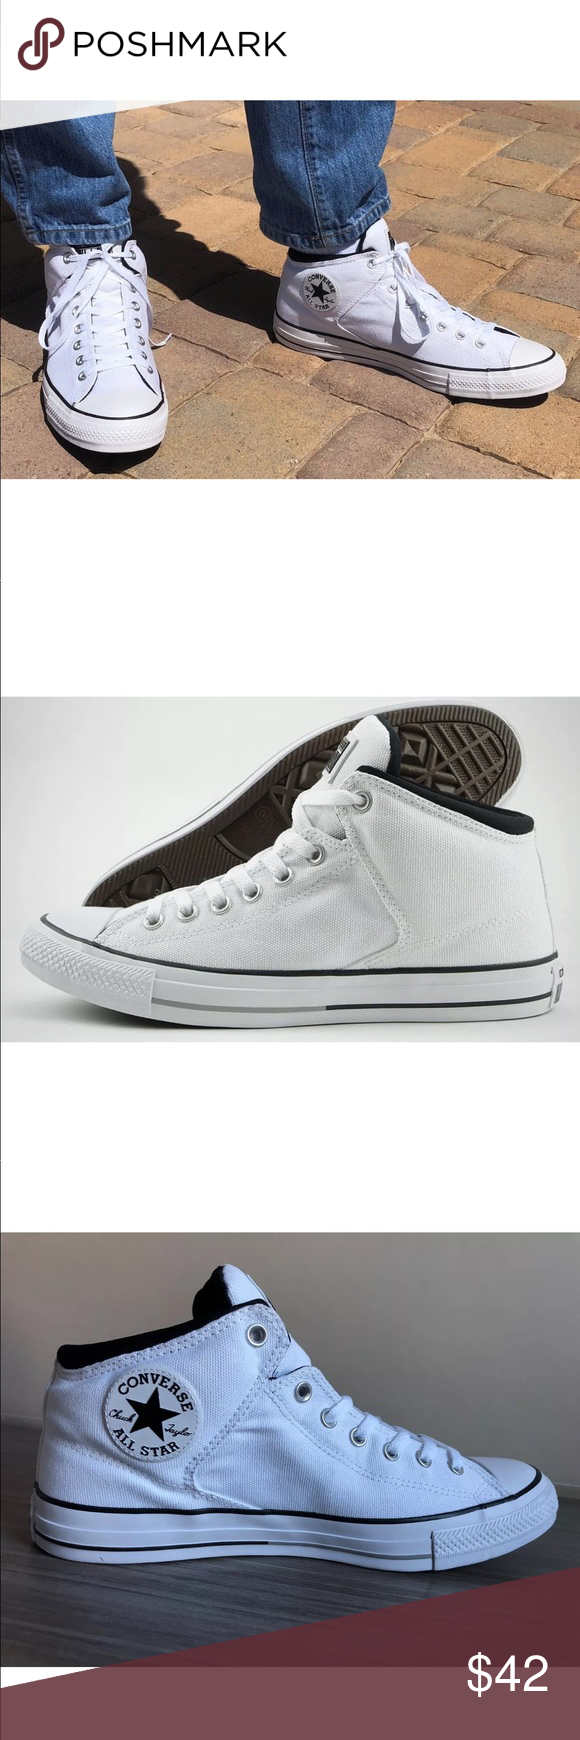 27cc9dd3058b Men s Converse Chuck Taylor CTAS High Street Shoes NEW AUTHENTIC CONVERSE  CHUCK TAYLOR HIGH STREET MEN S